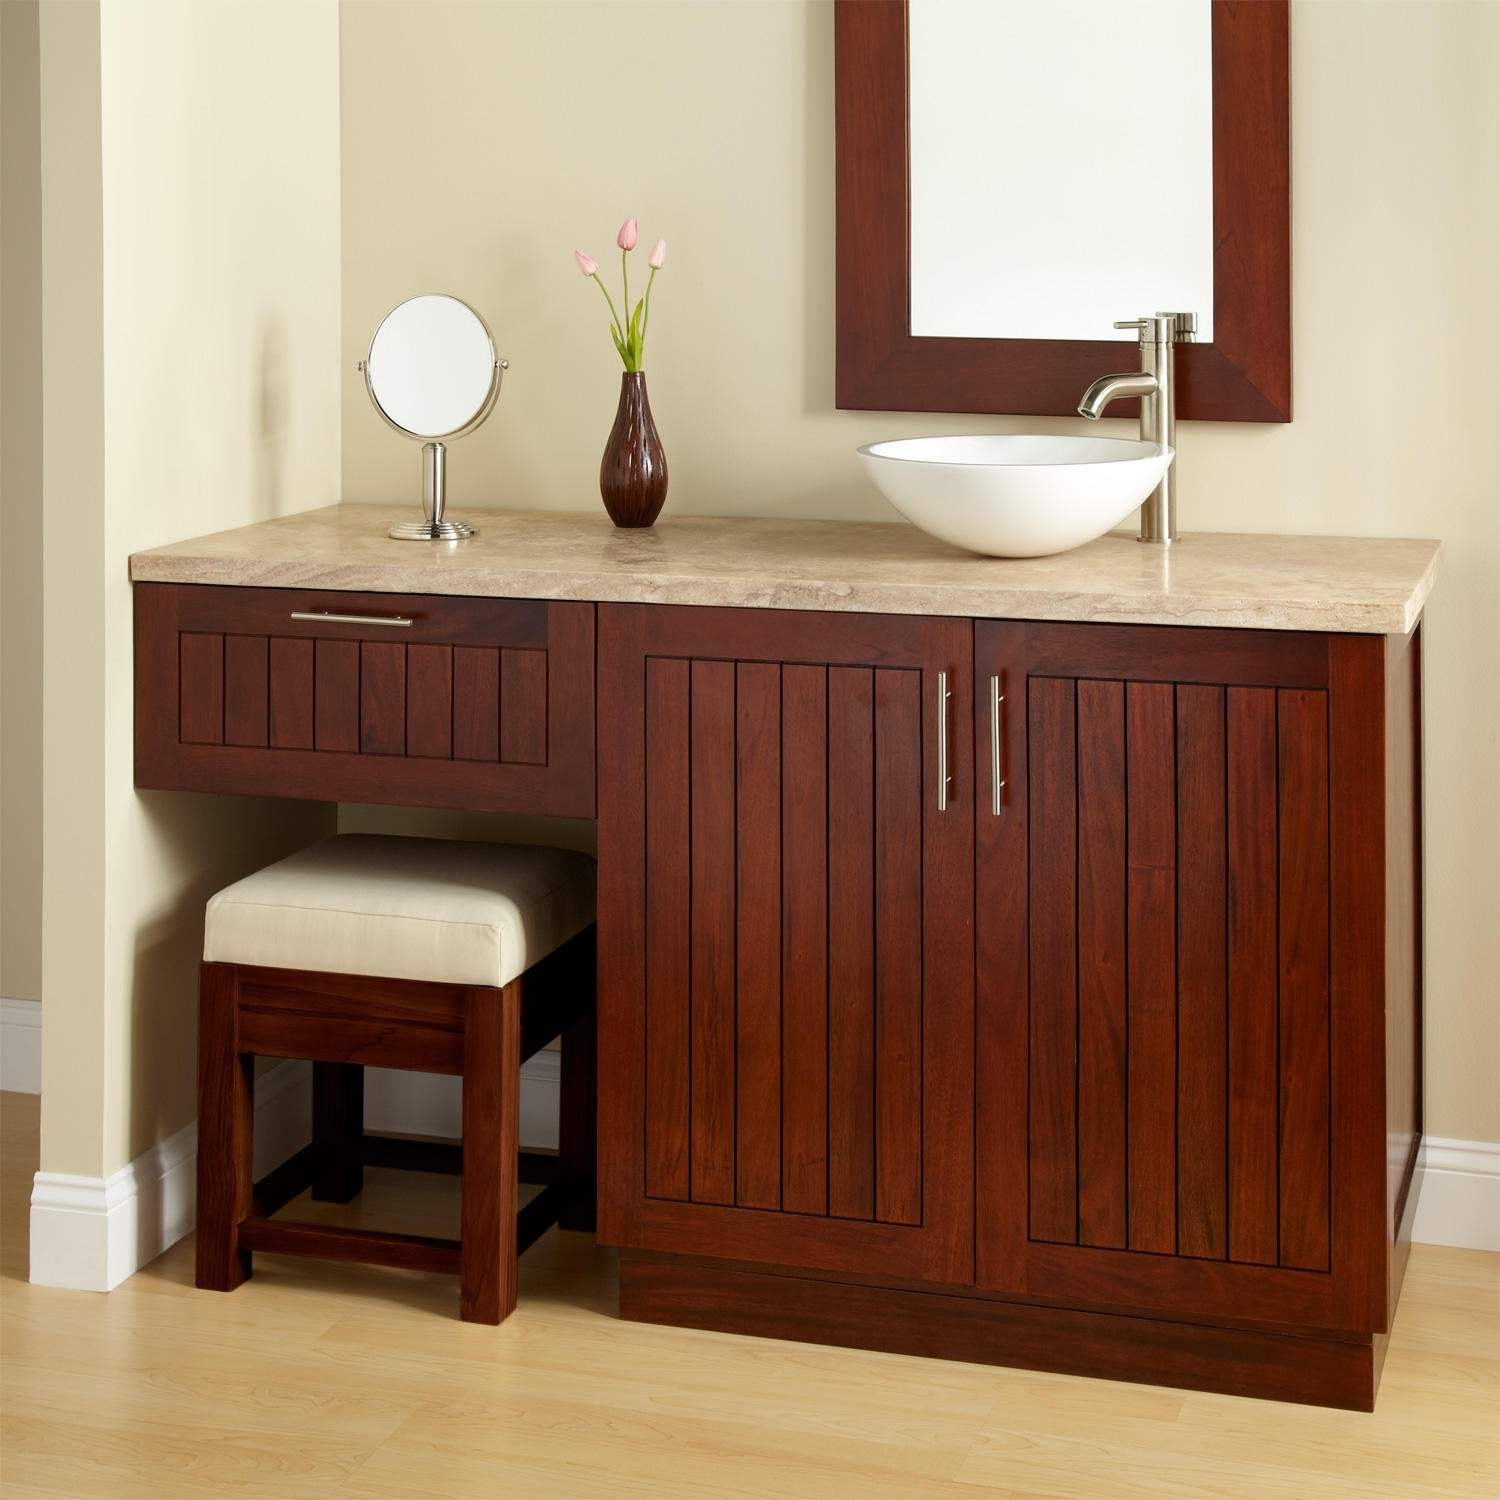 Top 68 Fabulous 48 Inch Vanity 24 Bathroom With Drawers 25 ...